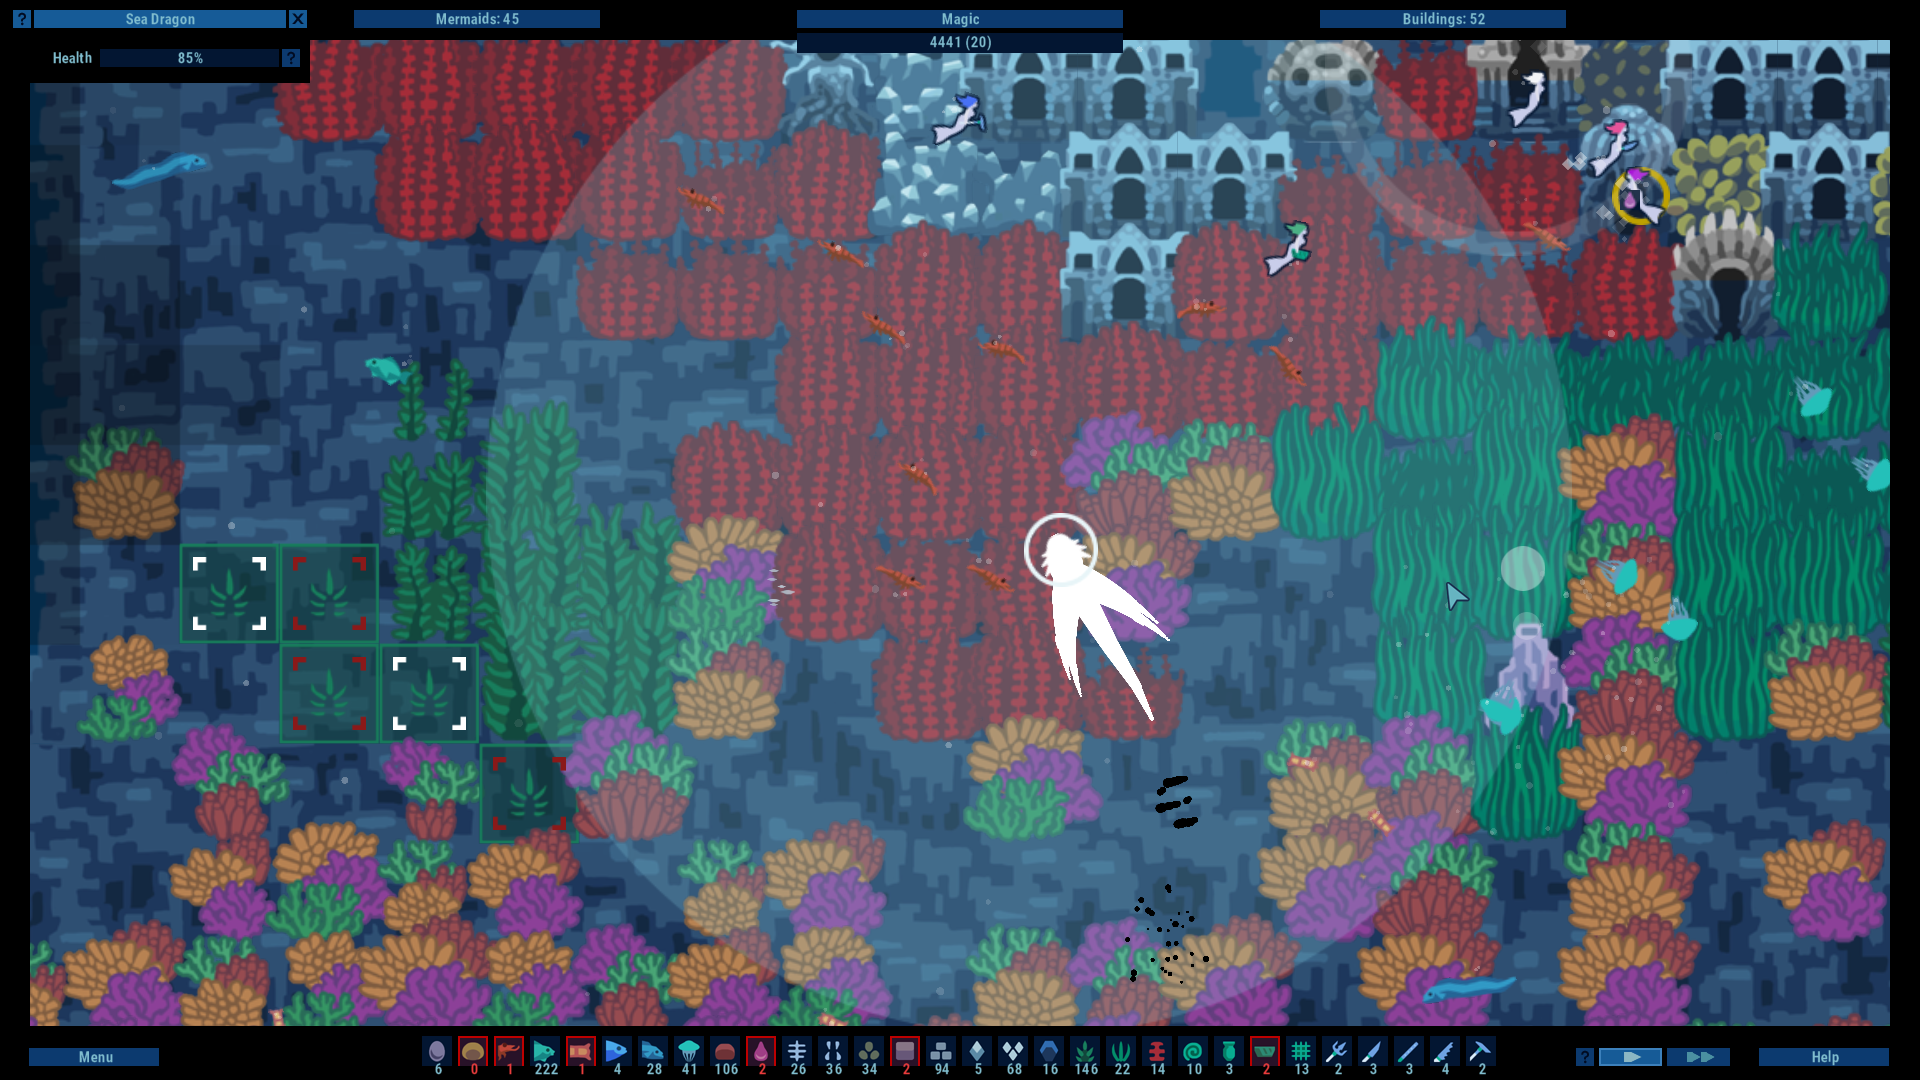 mermaidcolony_screenshot_4.png